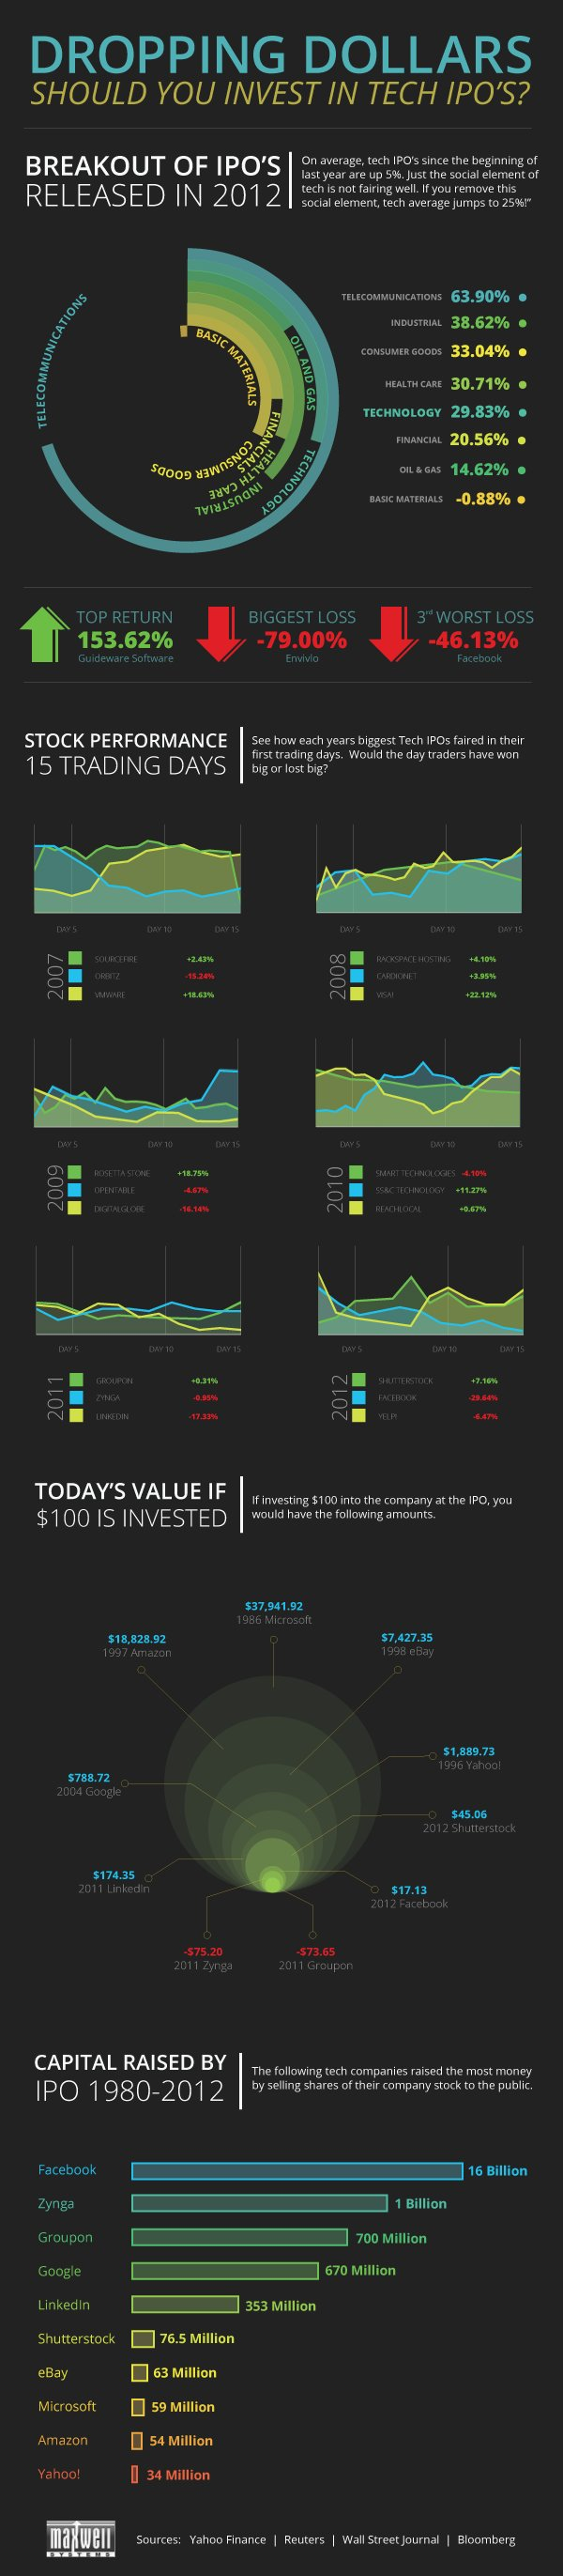 Should You Invest in Technology IPOs Infographic